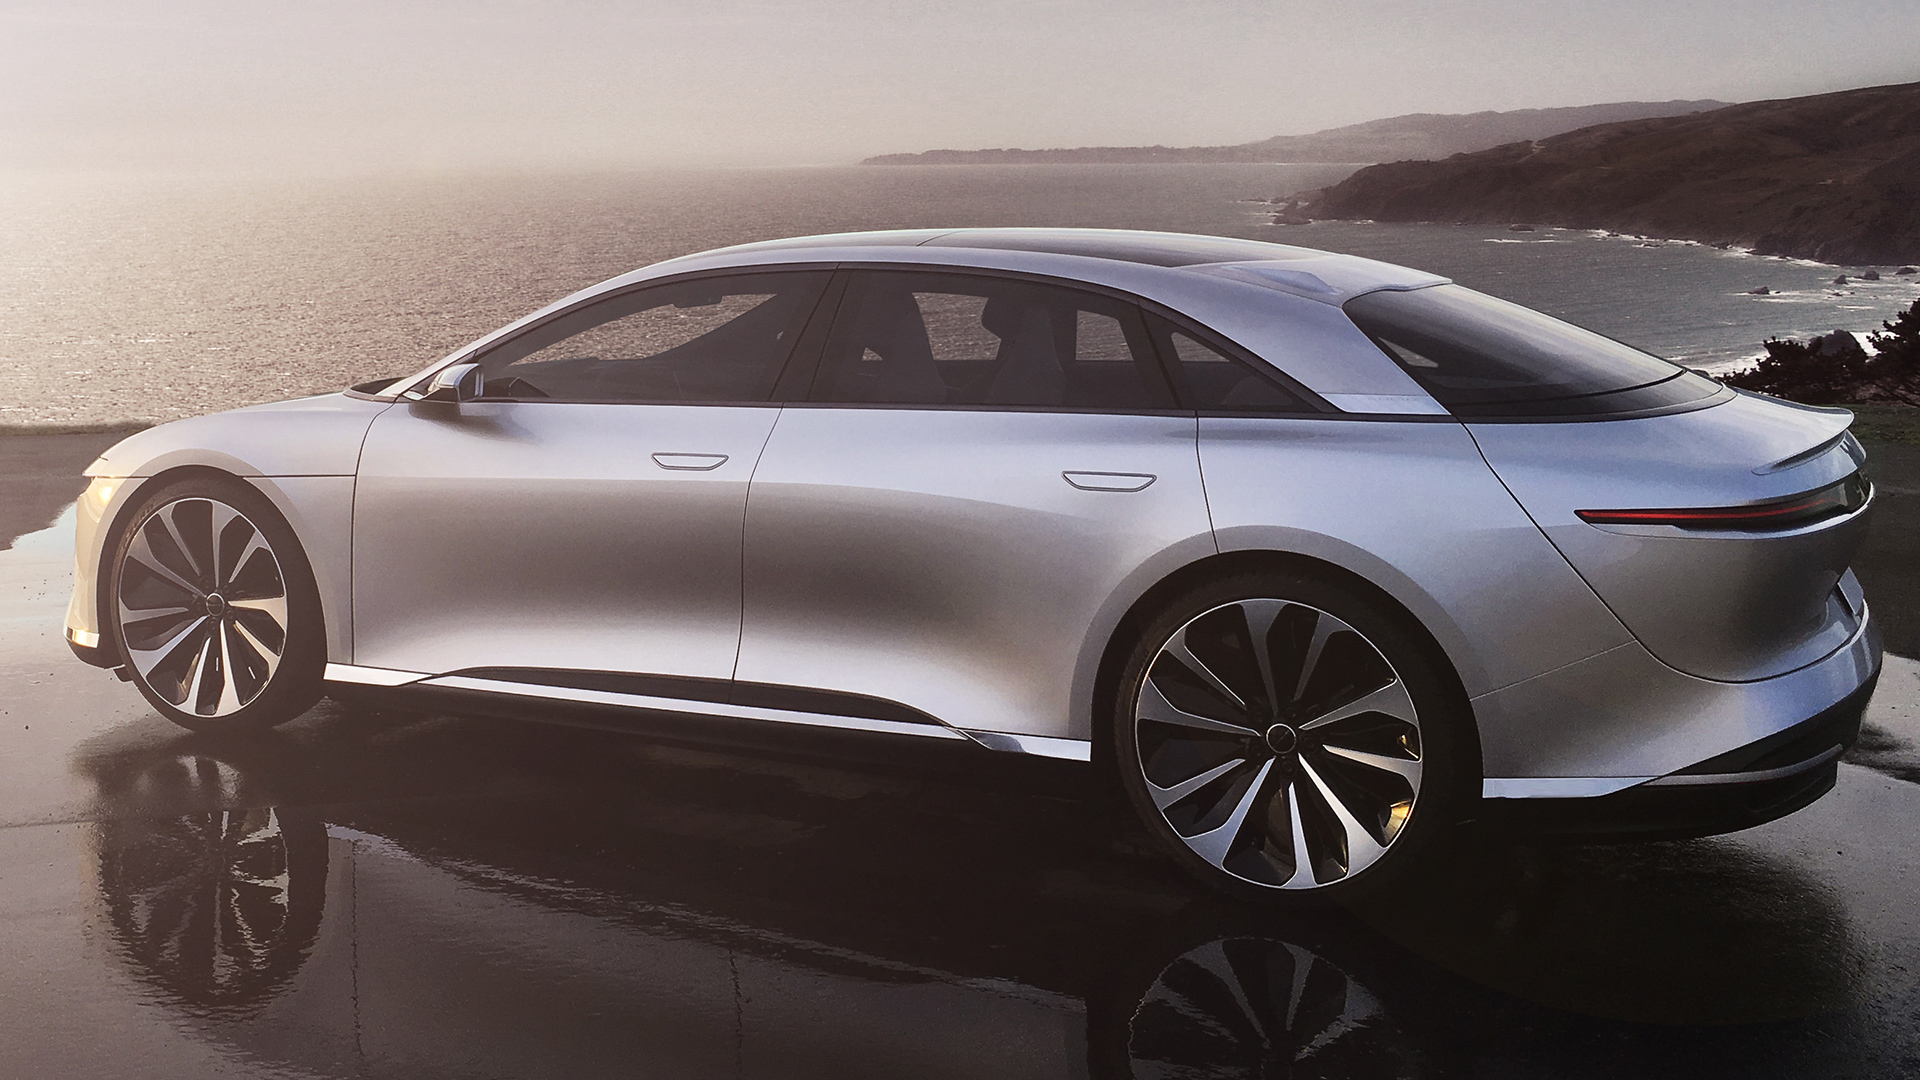 """Meet Lucid, An Aspiring Tesla Competitor Selling A $100K """"Private Jet On Wheels"""""""